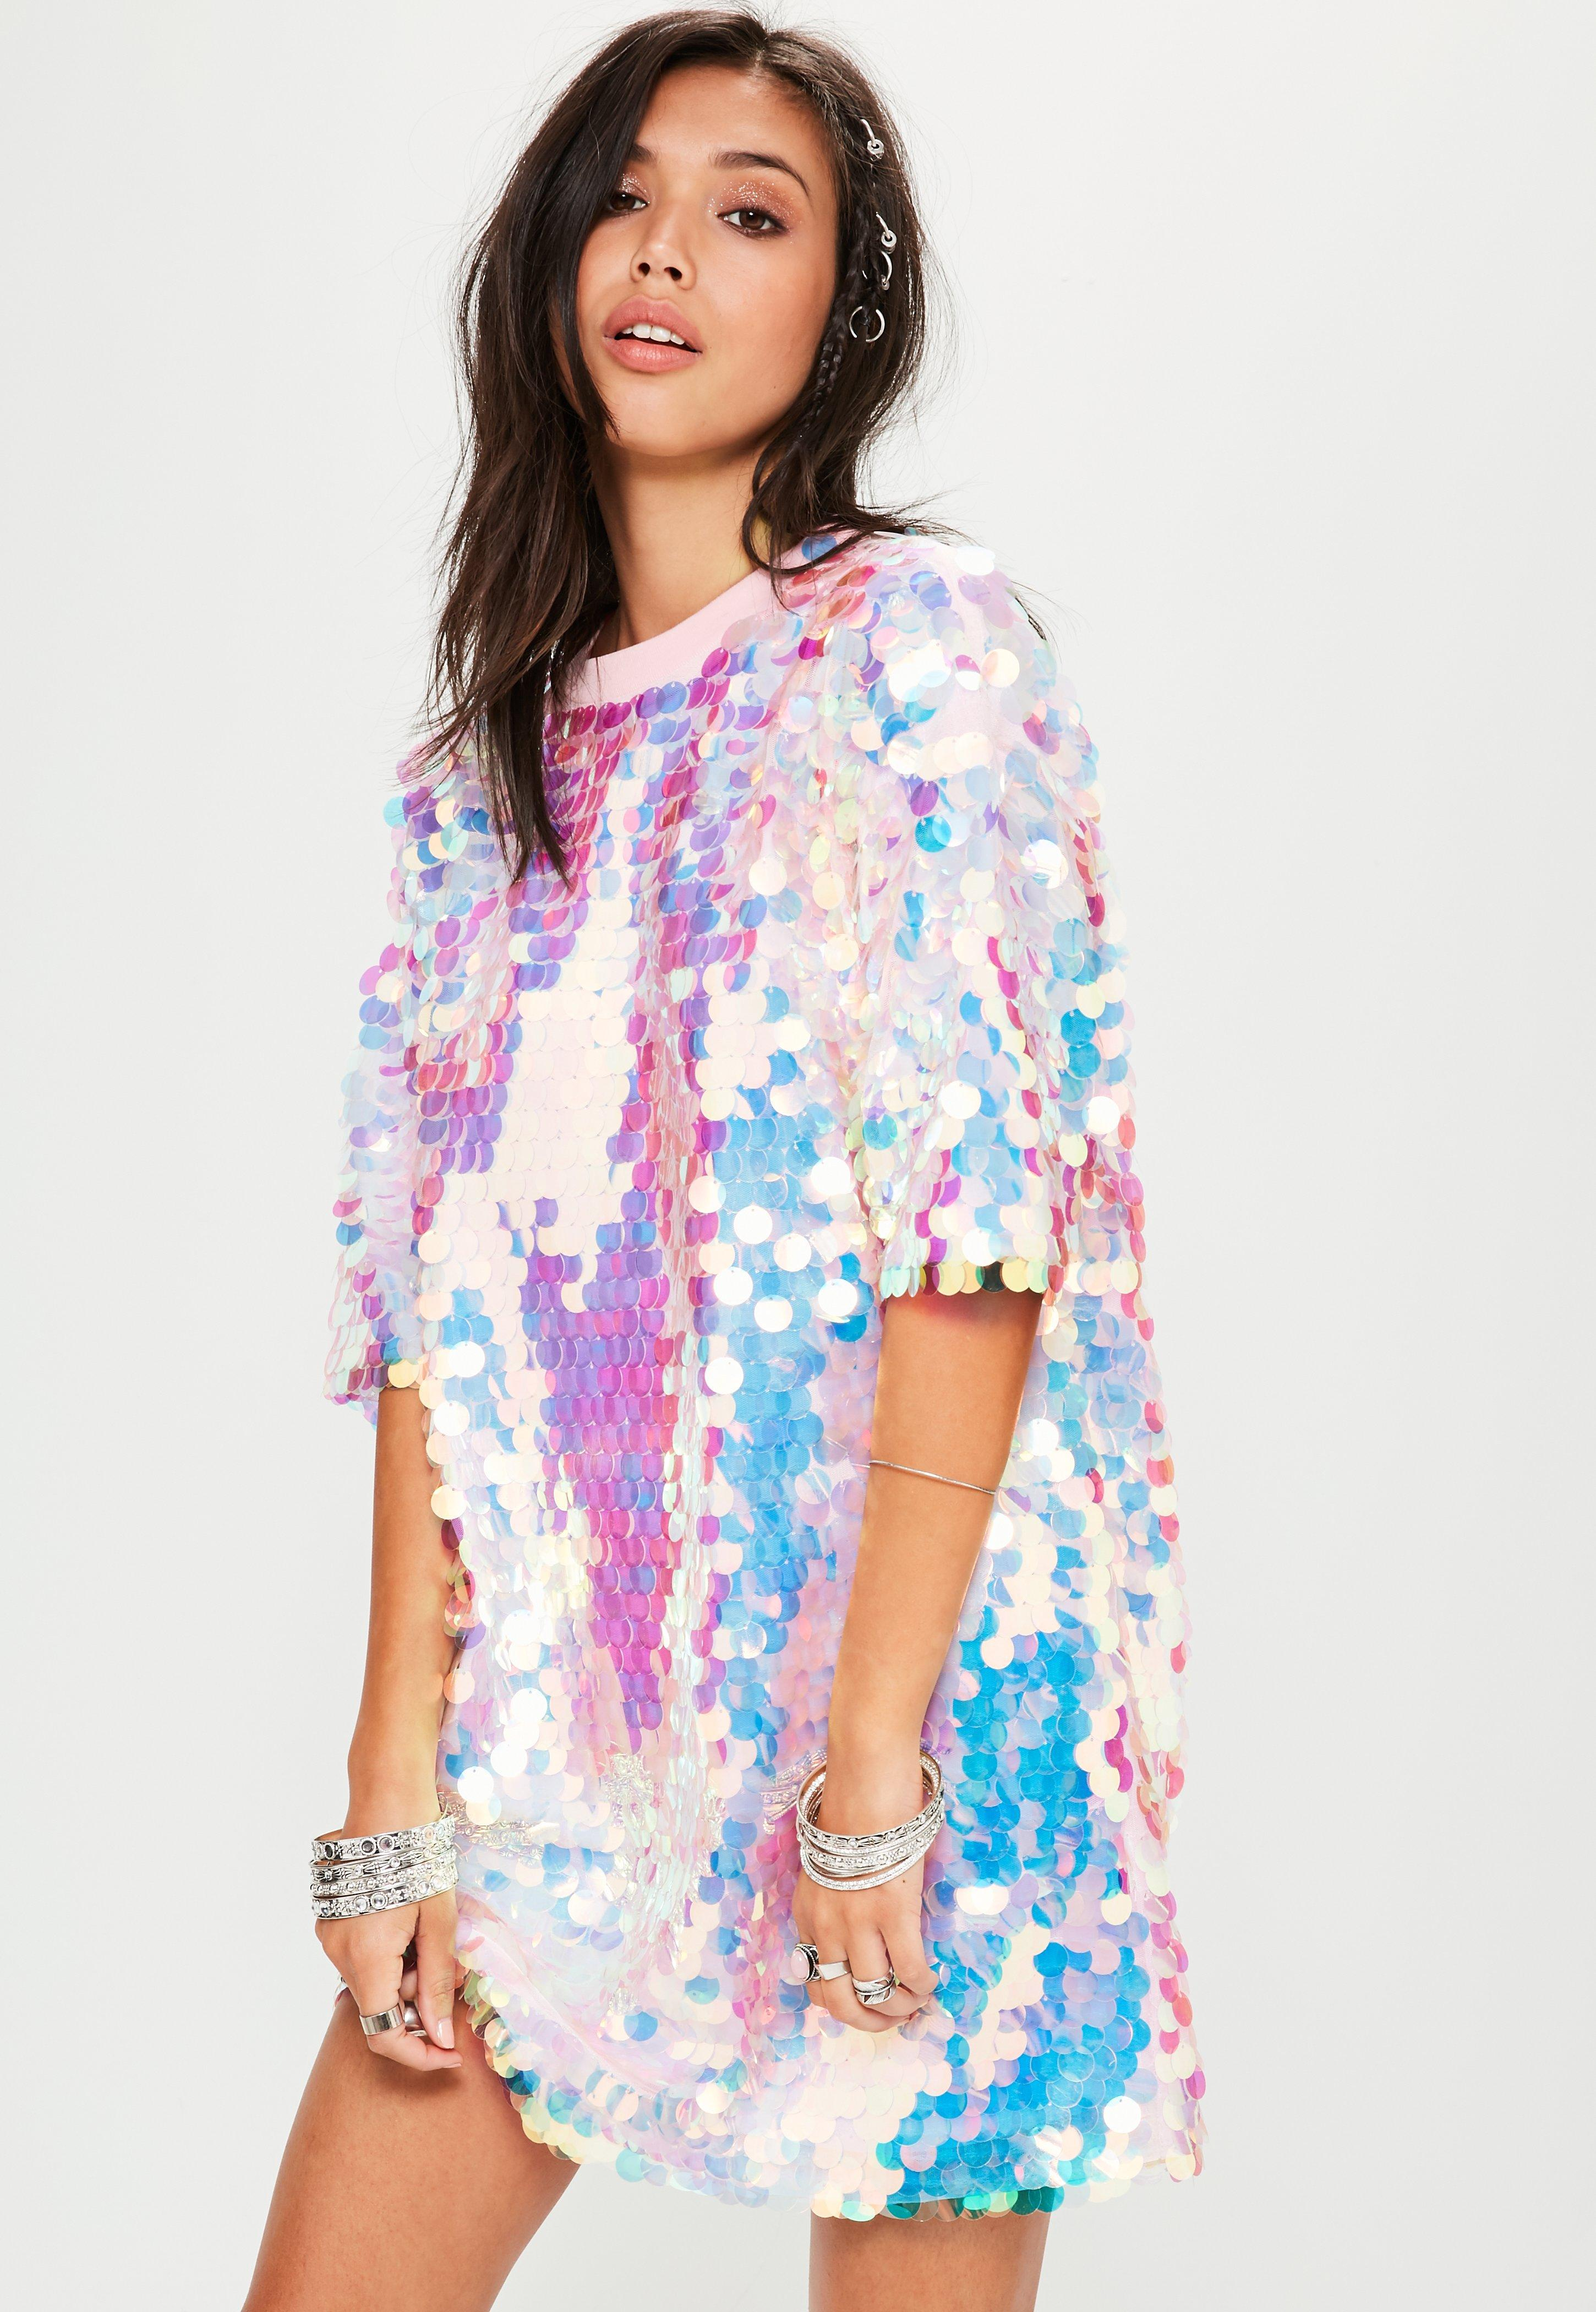 d83cc0fa1727c Lyst - Missguided Pink Sequin T Shirt Dress in Pink